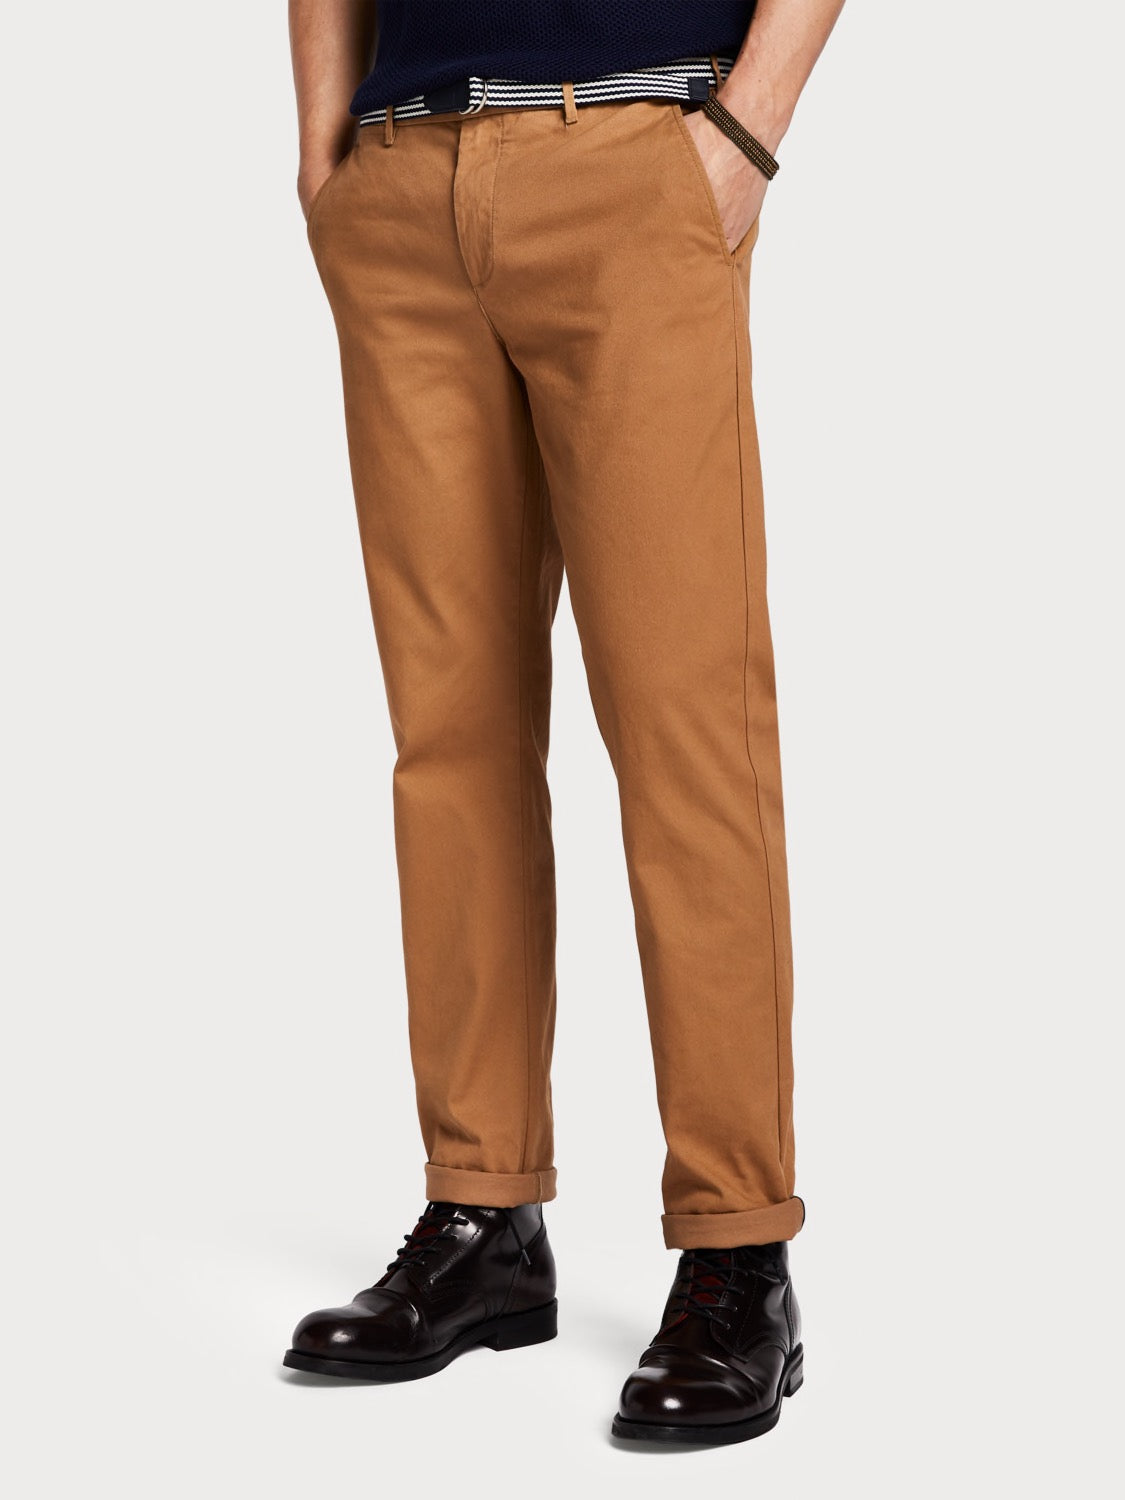 Stuart - Peached Chinos